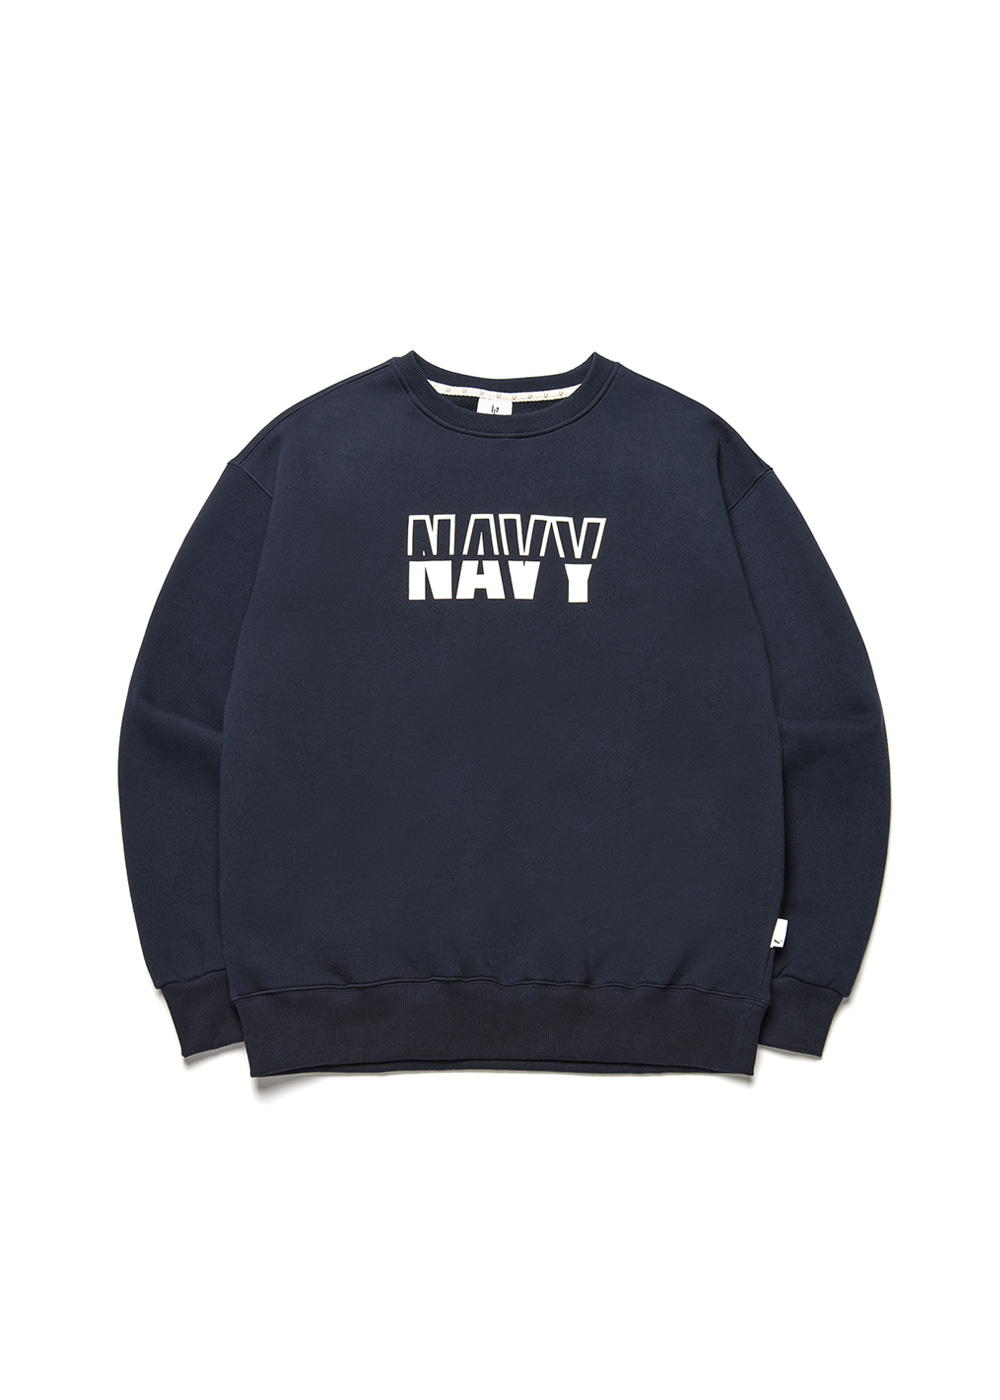 Navy sweat shirt [navy]